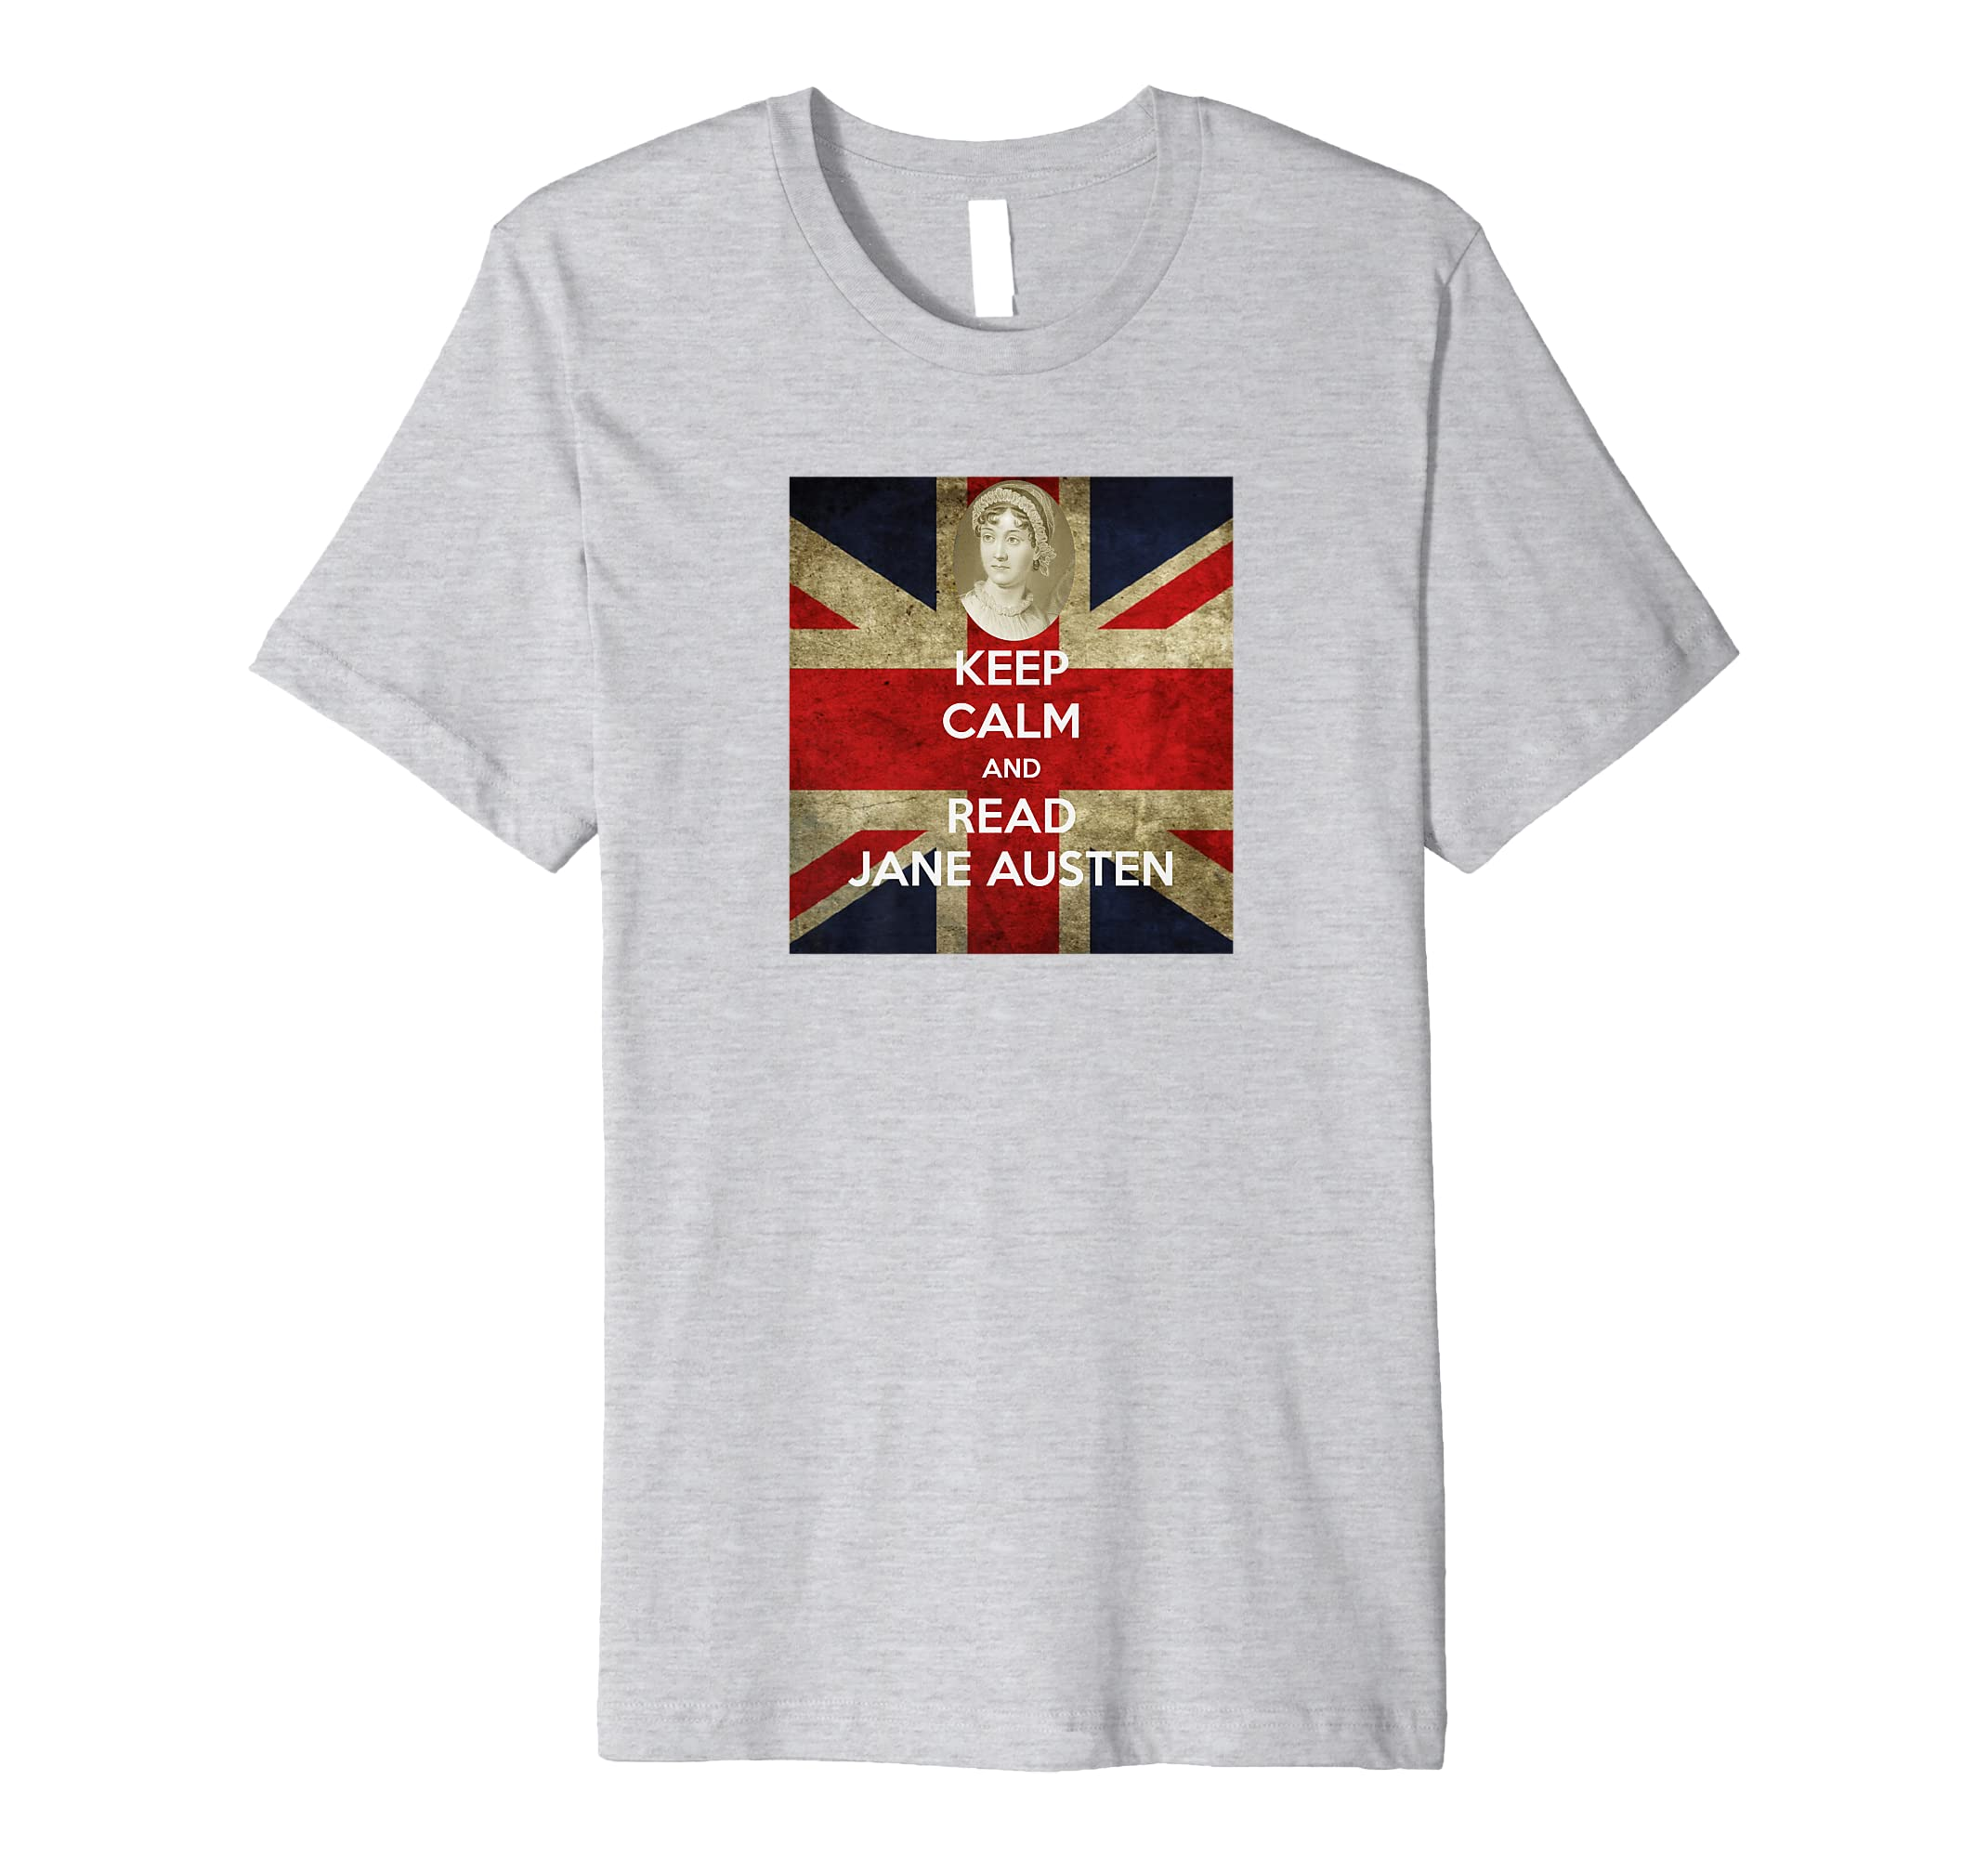 762d23263 Amazon.com: Keep Calm and Read Jane Austen Gift T Shirt: Clothing